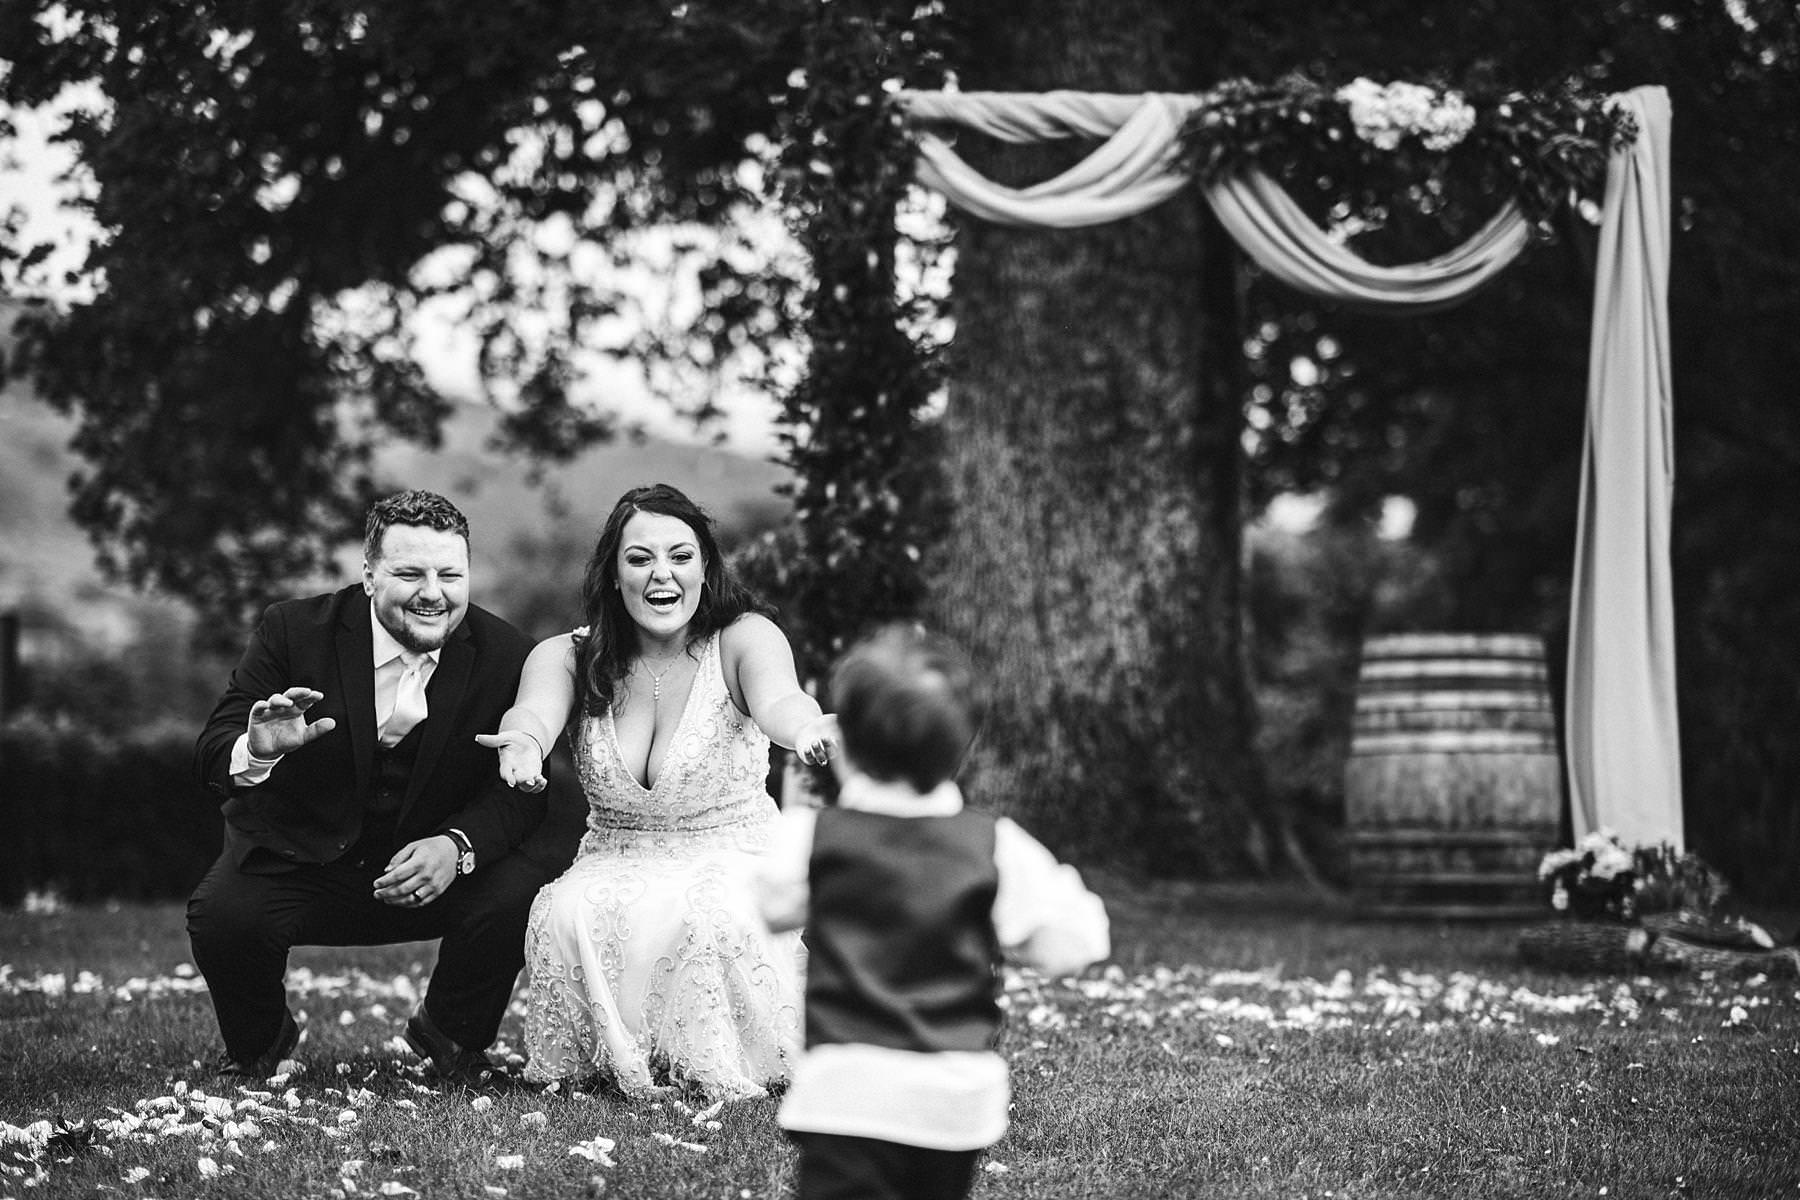 Lovely candid family shoot during destination wedding in Tuscany countryside Villa Le Bolli near Radicondoli medieval town